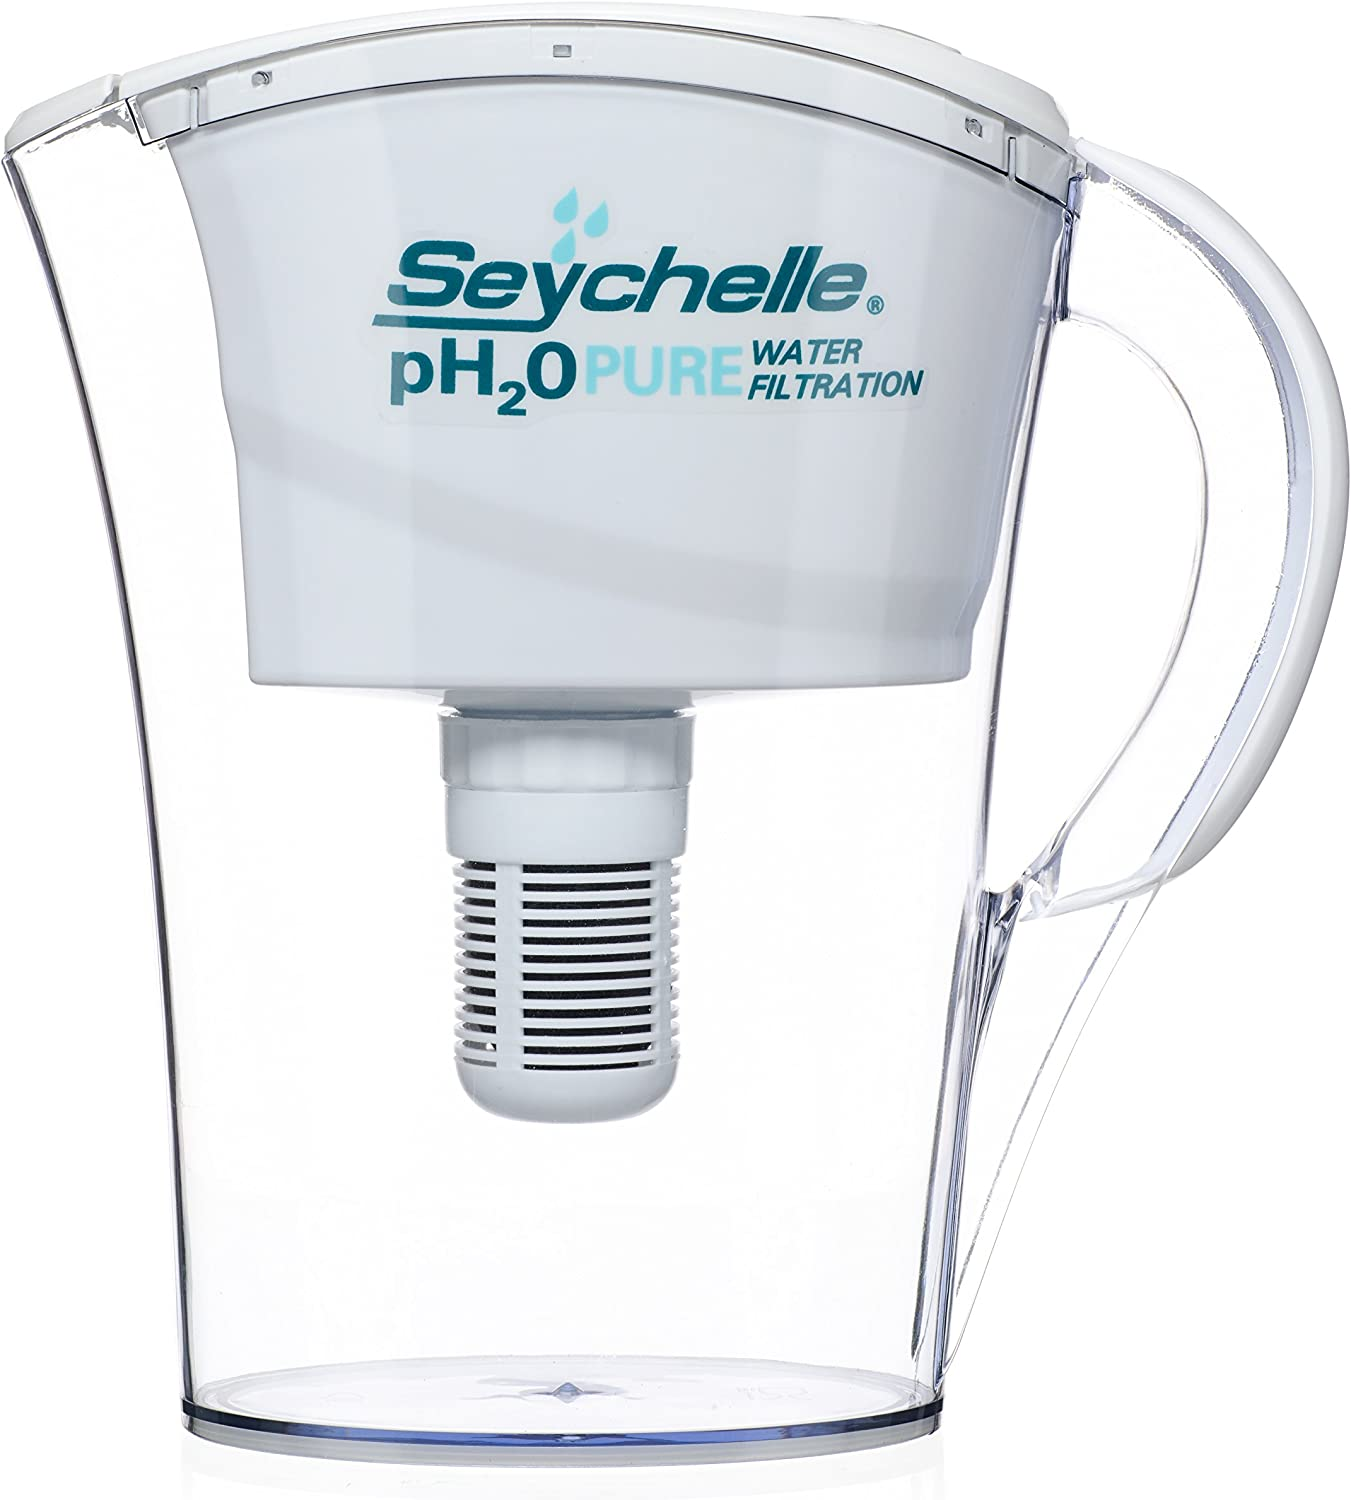 Seychell 100 Gallon Capacity Water Filter Pitcher